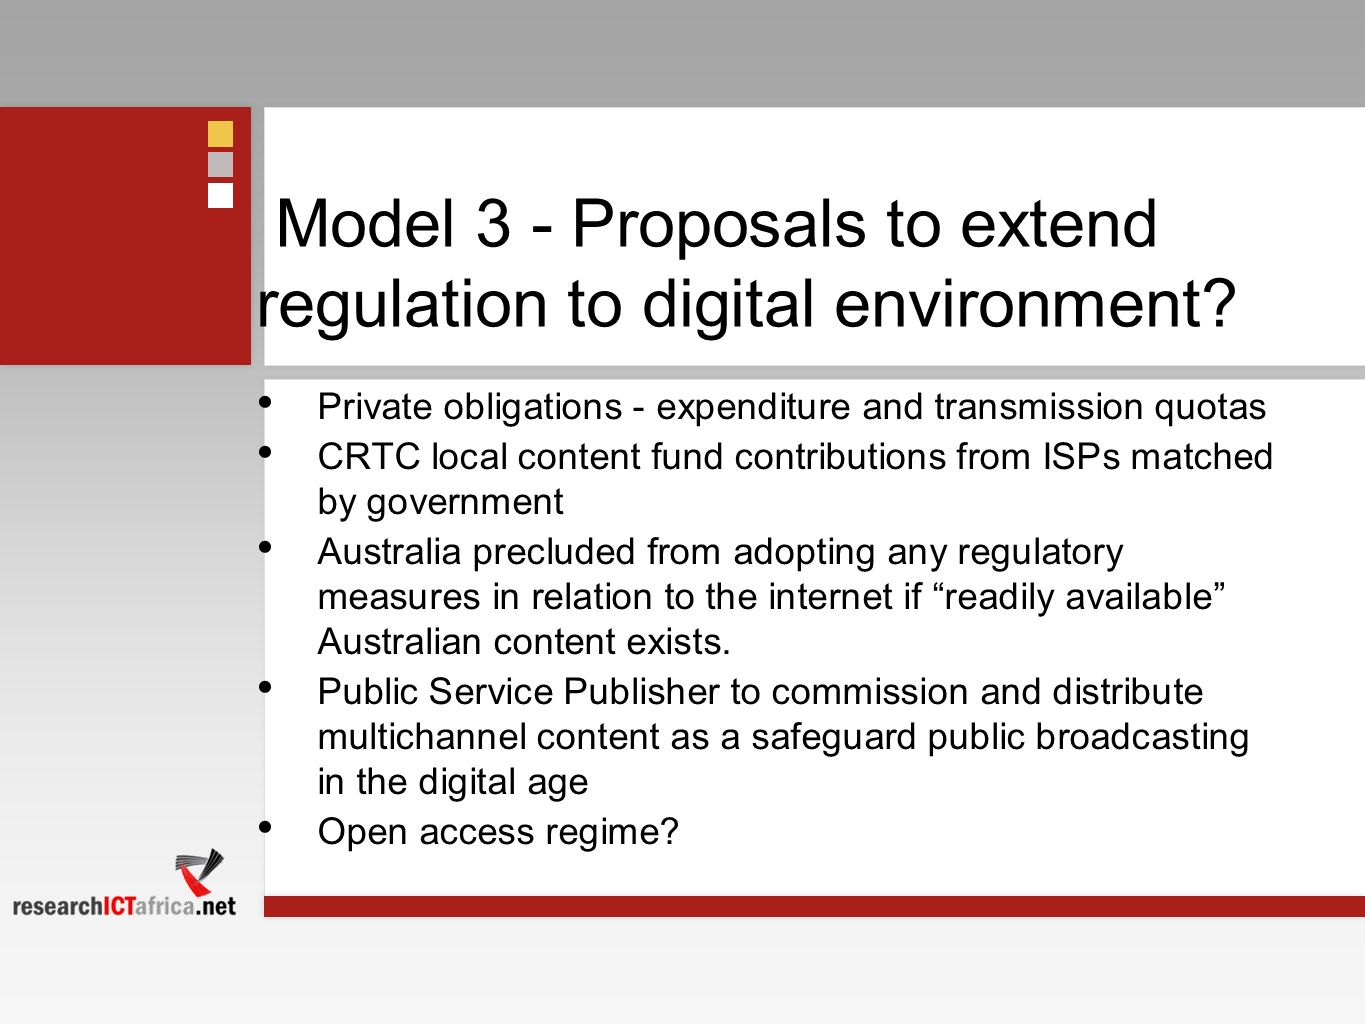 Model 3 - Proposals to extend regulation to digital environment.